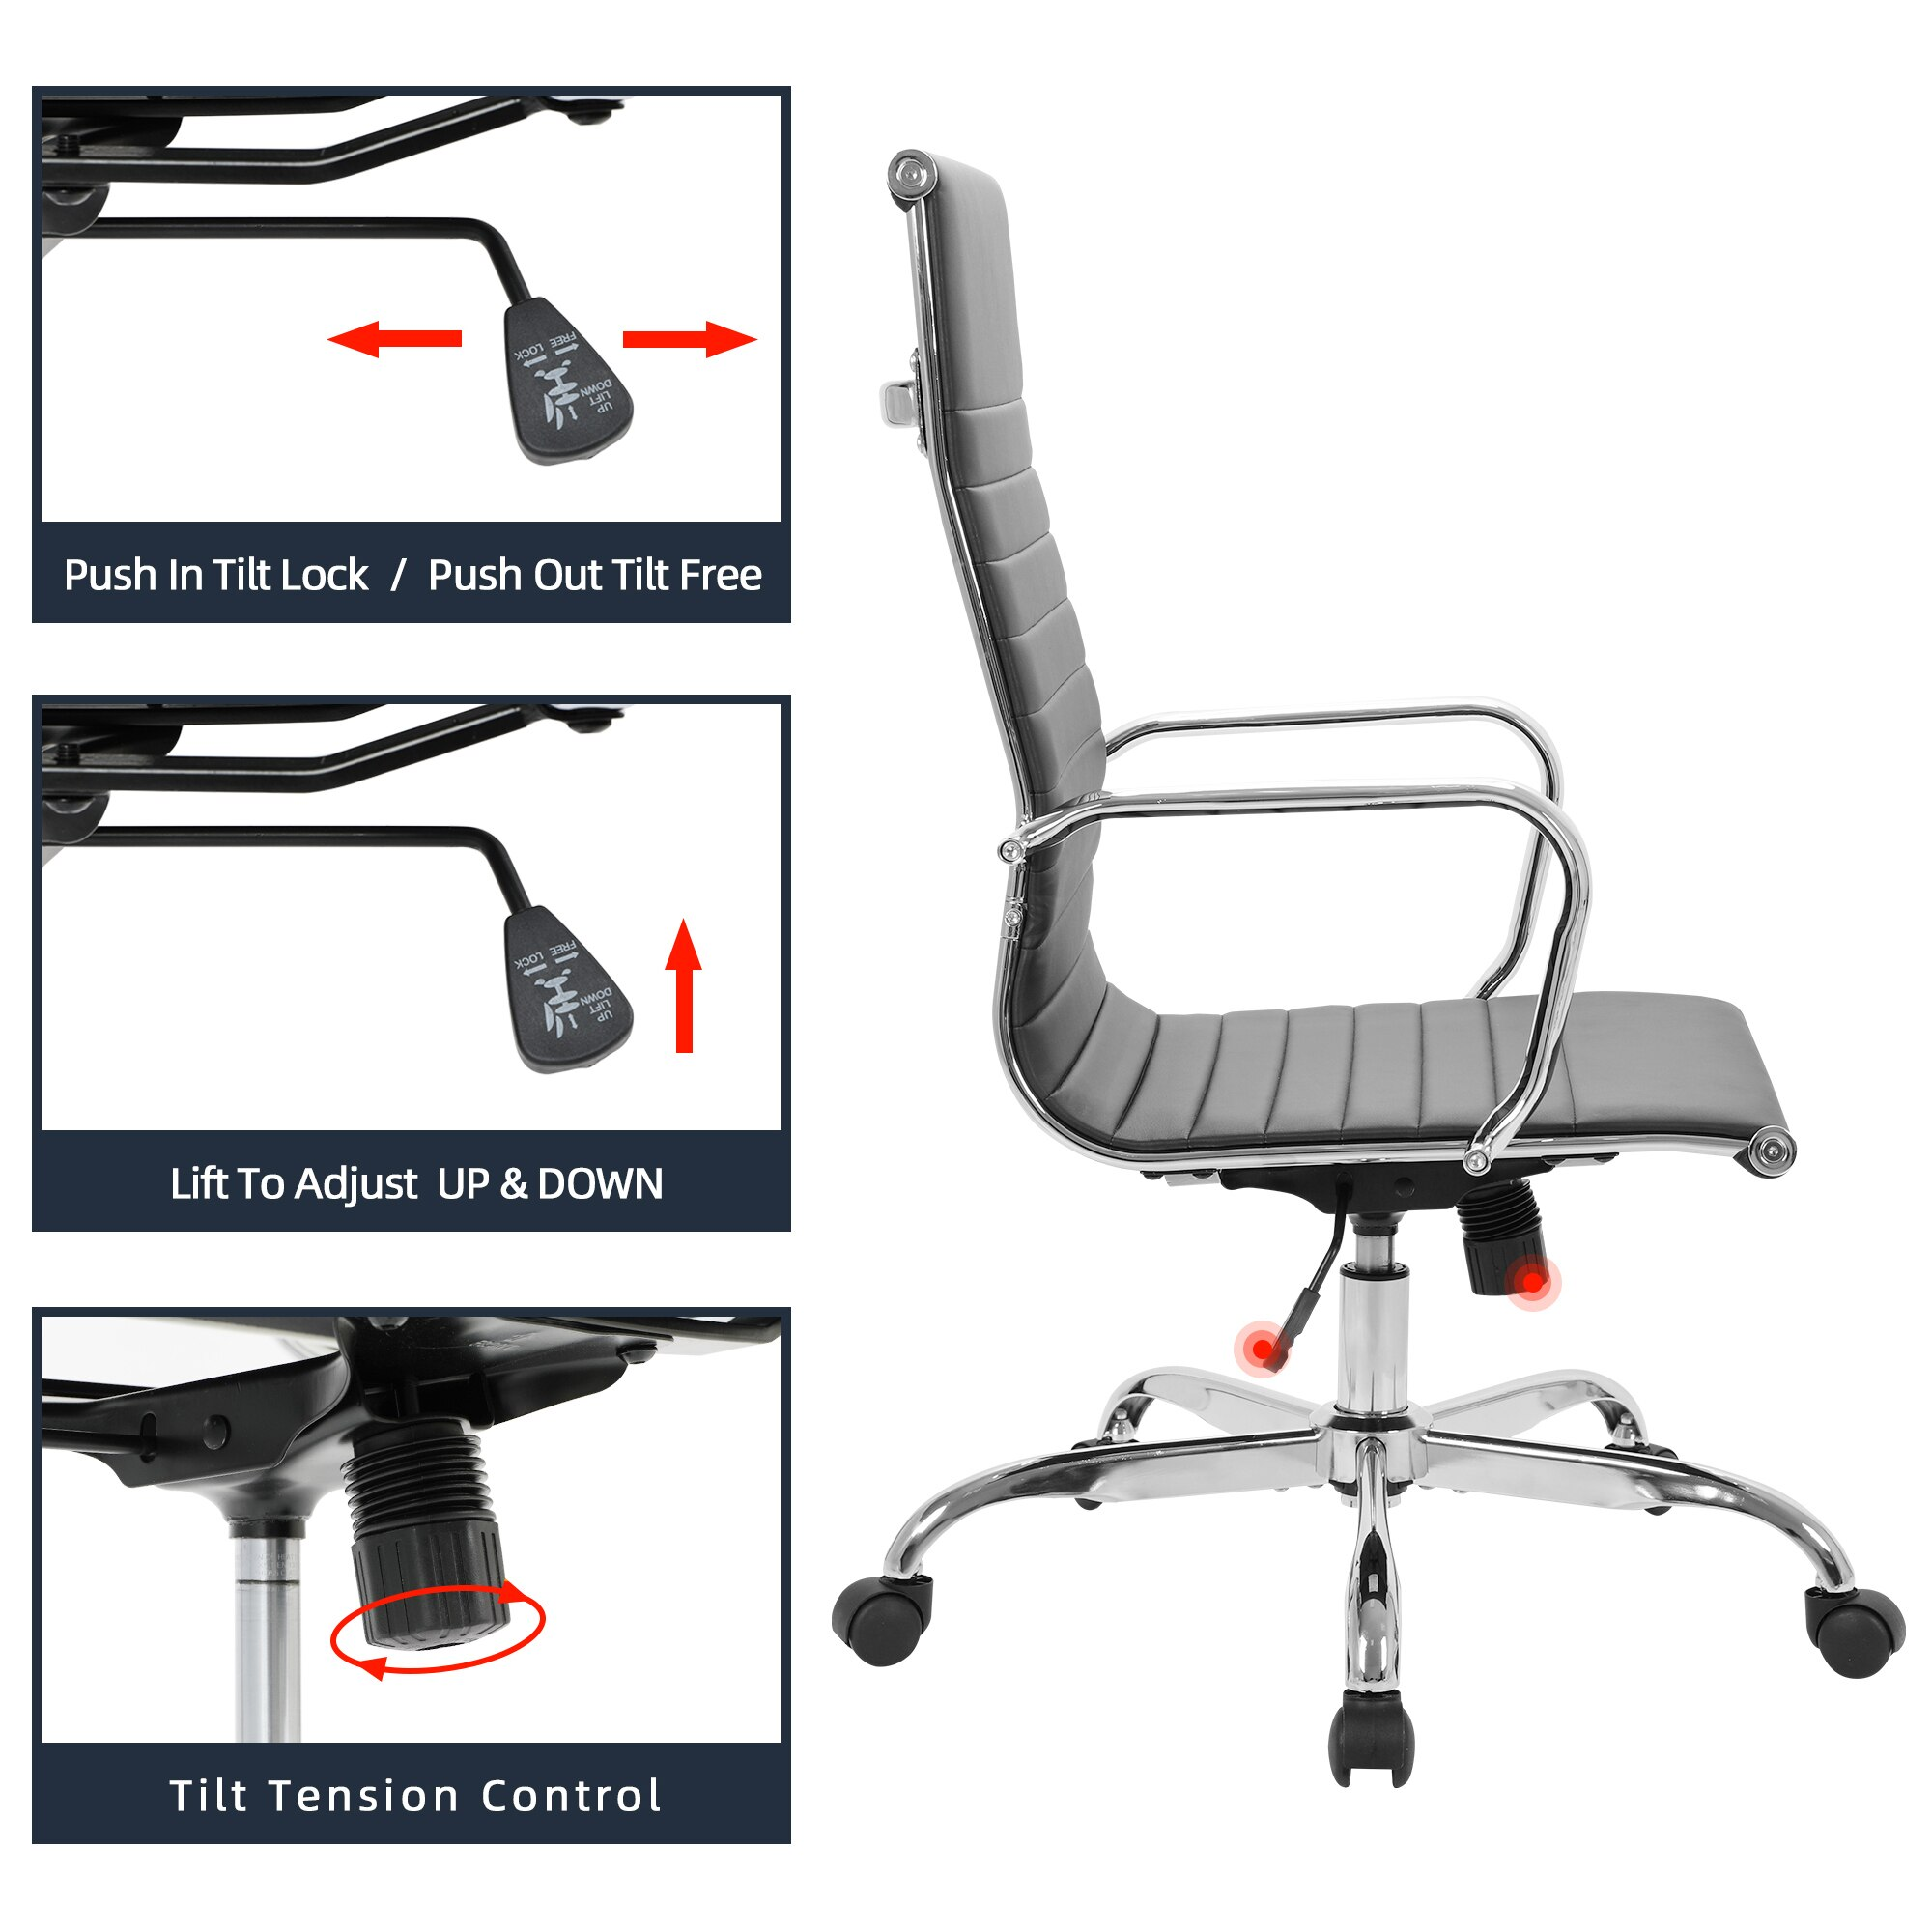 H5b8c644aa2754f1b8838ec0035bbcdb6Z - GOSKEY High Back Office Chair PU Leather Ribbed Swivel Tilt Adjustable Home Desk Chair with Armrest Executive Conference Black